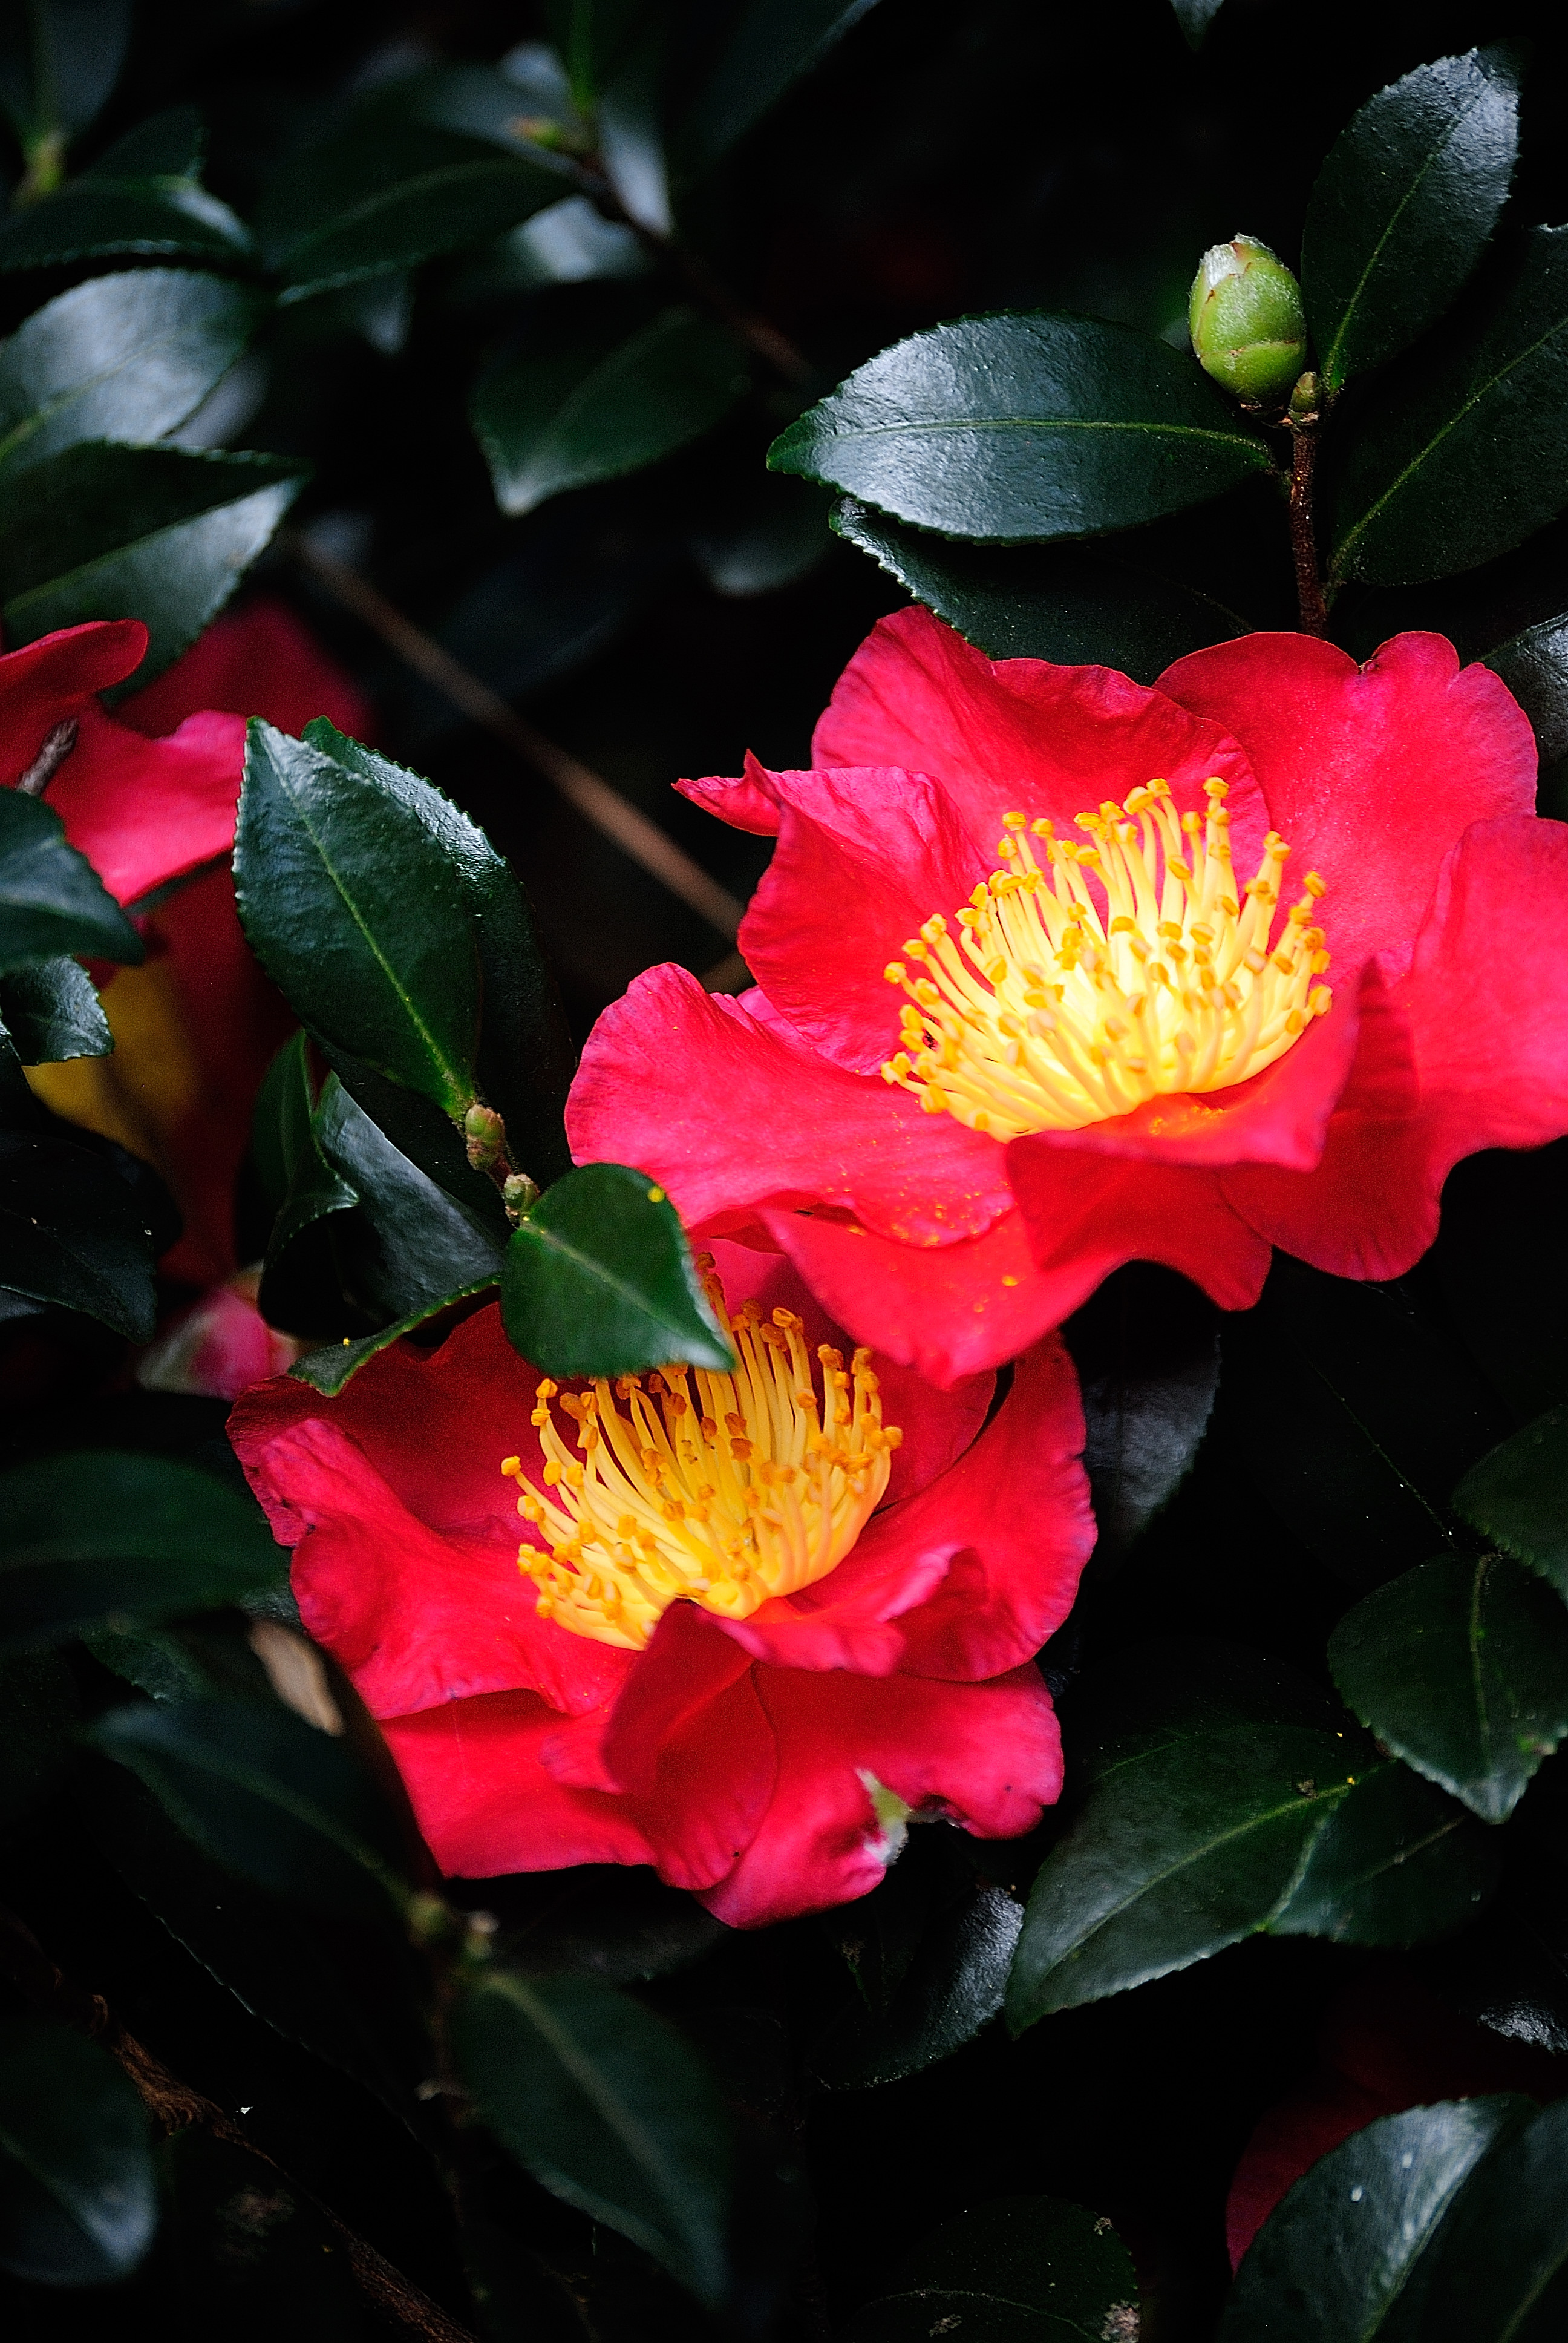 Yuletide Camellias bloomed early this year.